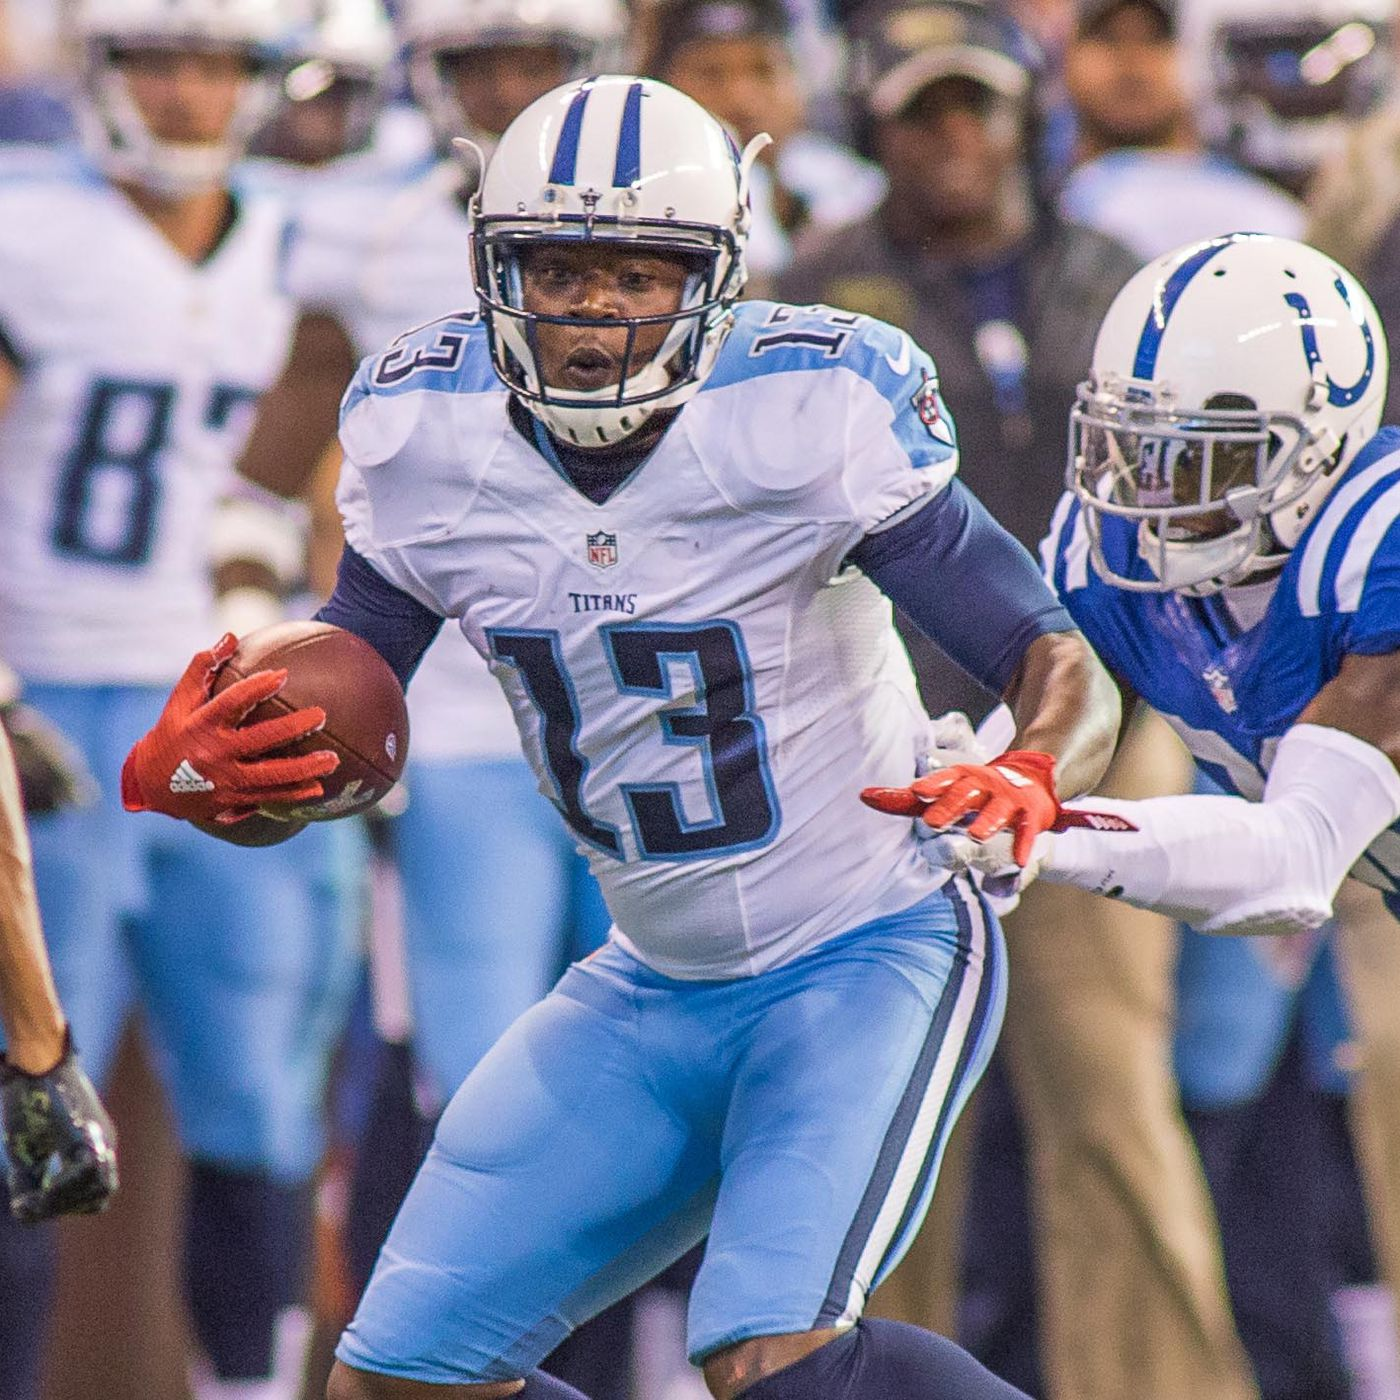 Kendall Wright Takes a Shot at the Titans - Music City Miracles